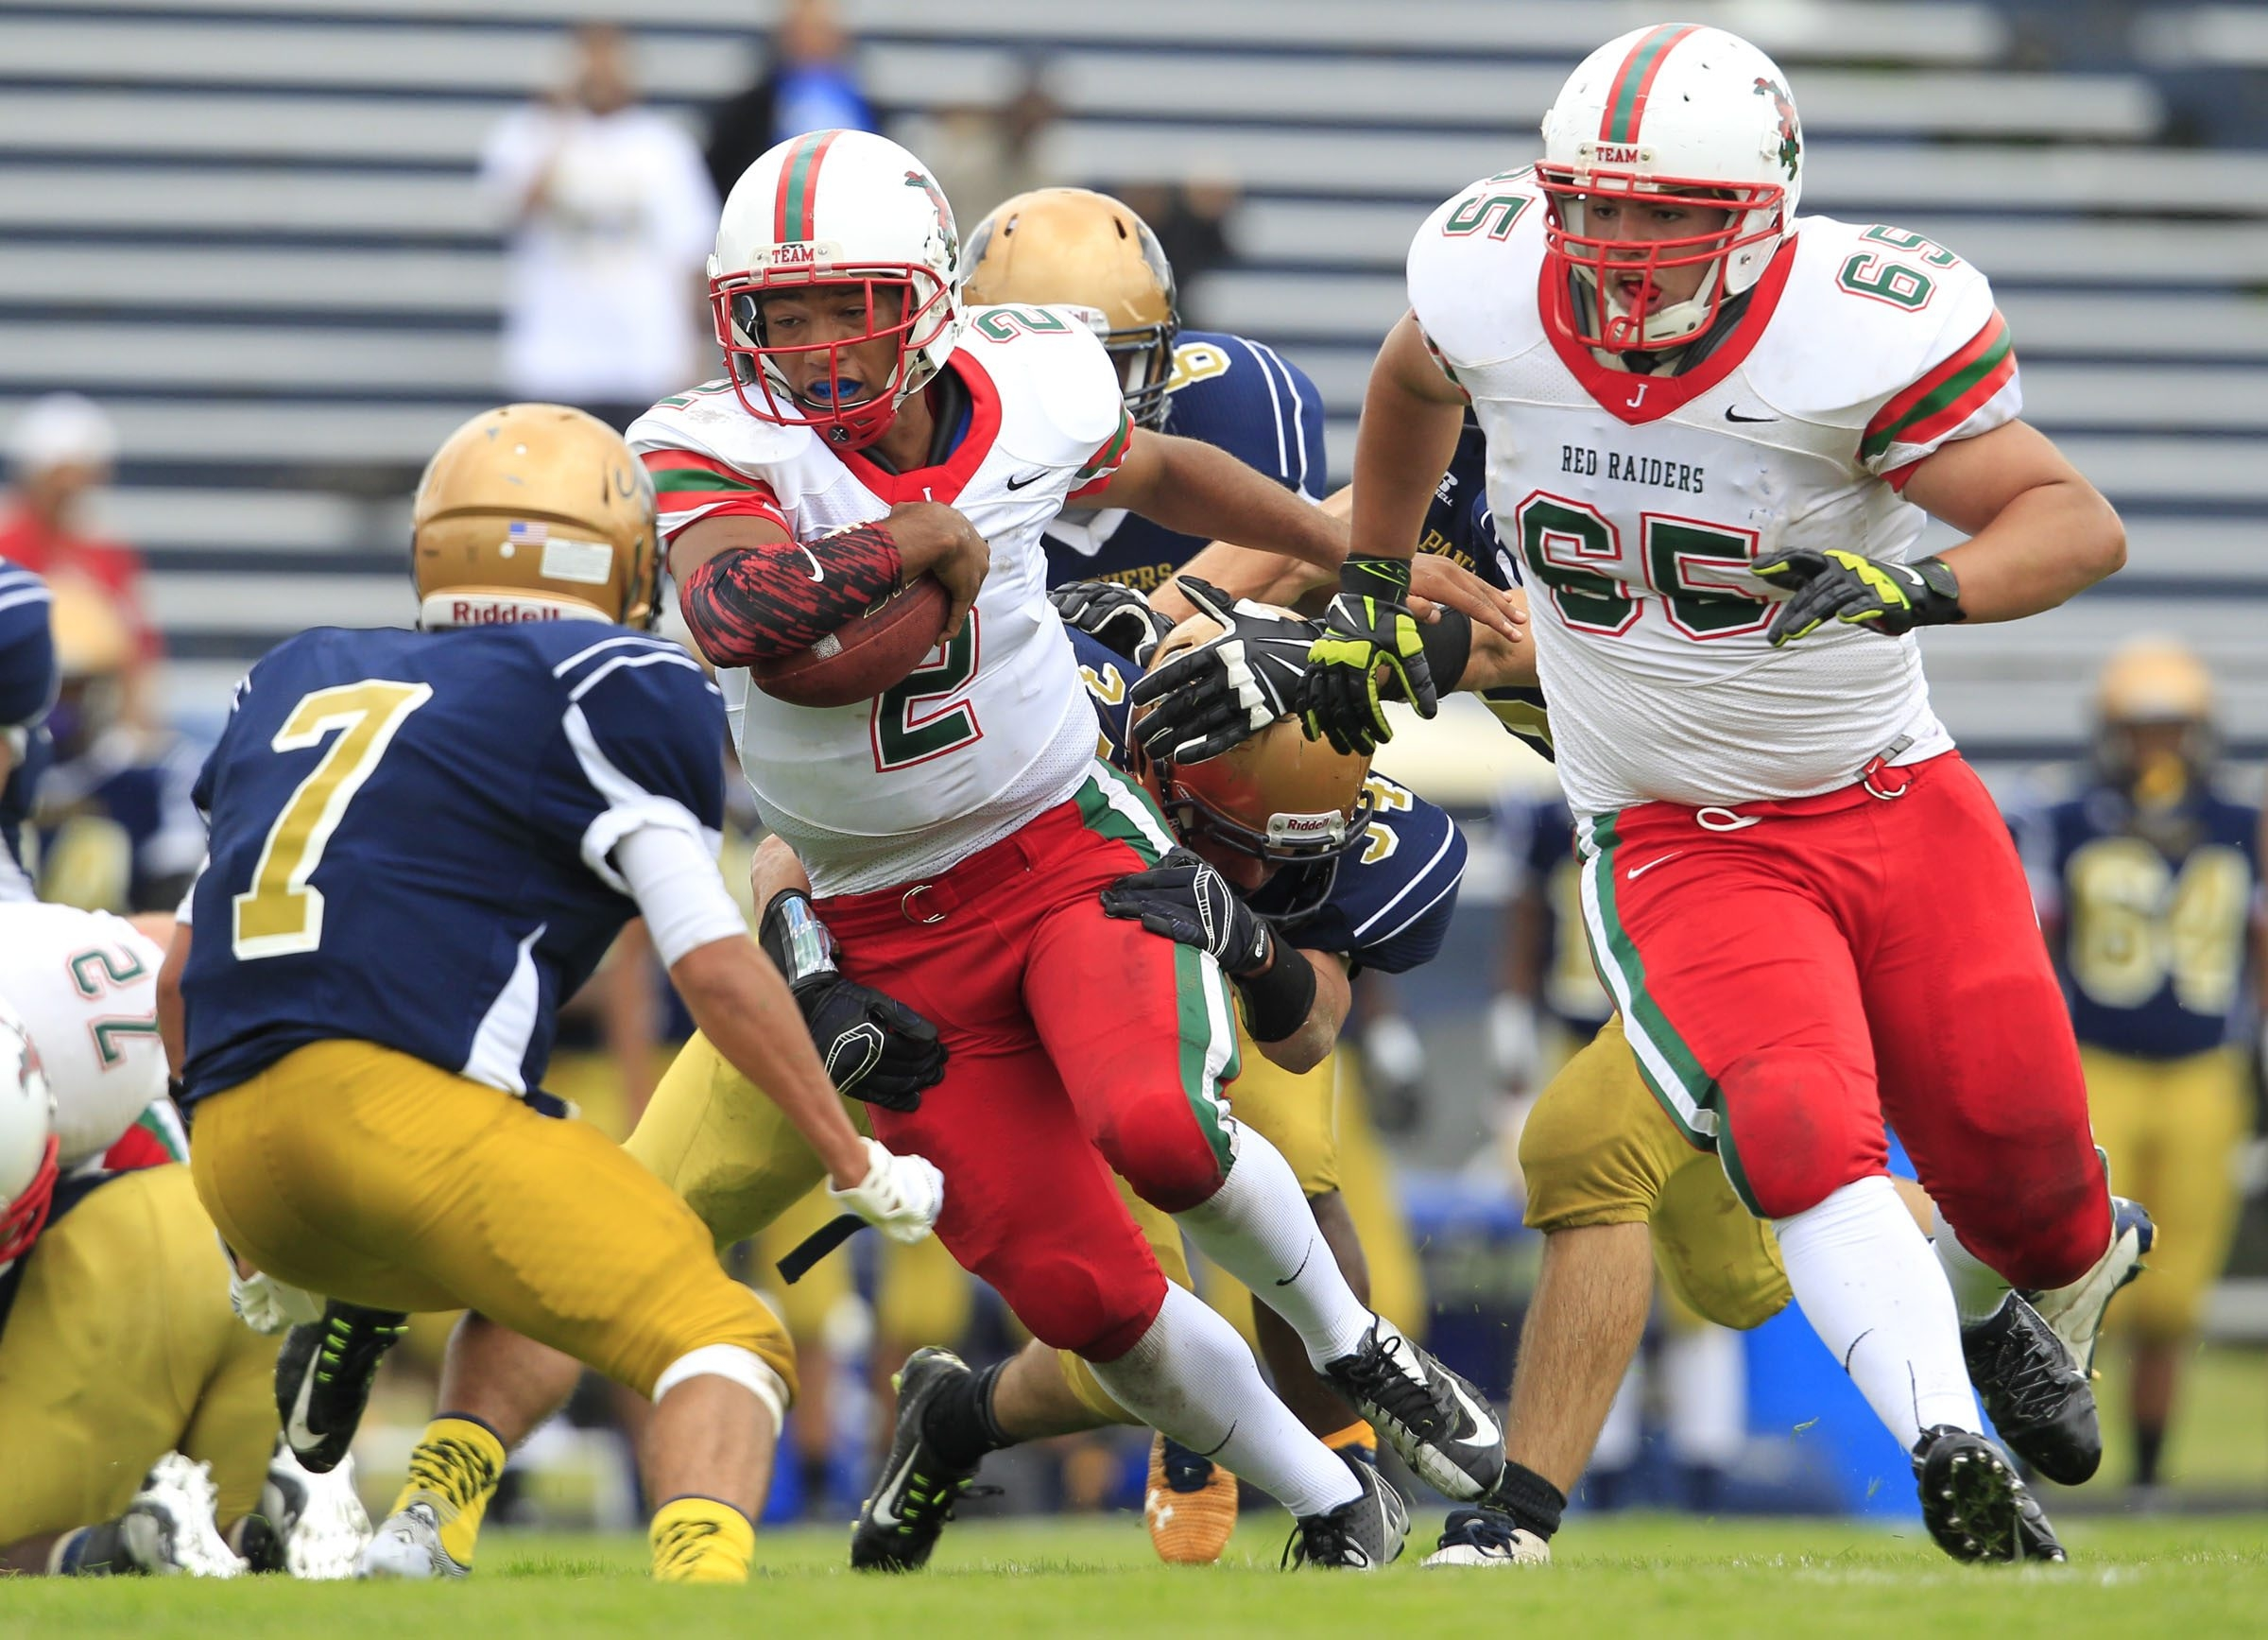 Quarterback Nikkolas Holland (2) of Jamestown is one of three first team All-WNY players back for the 2015 season.